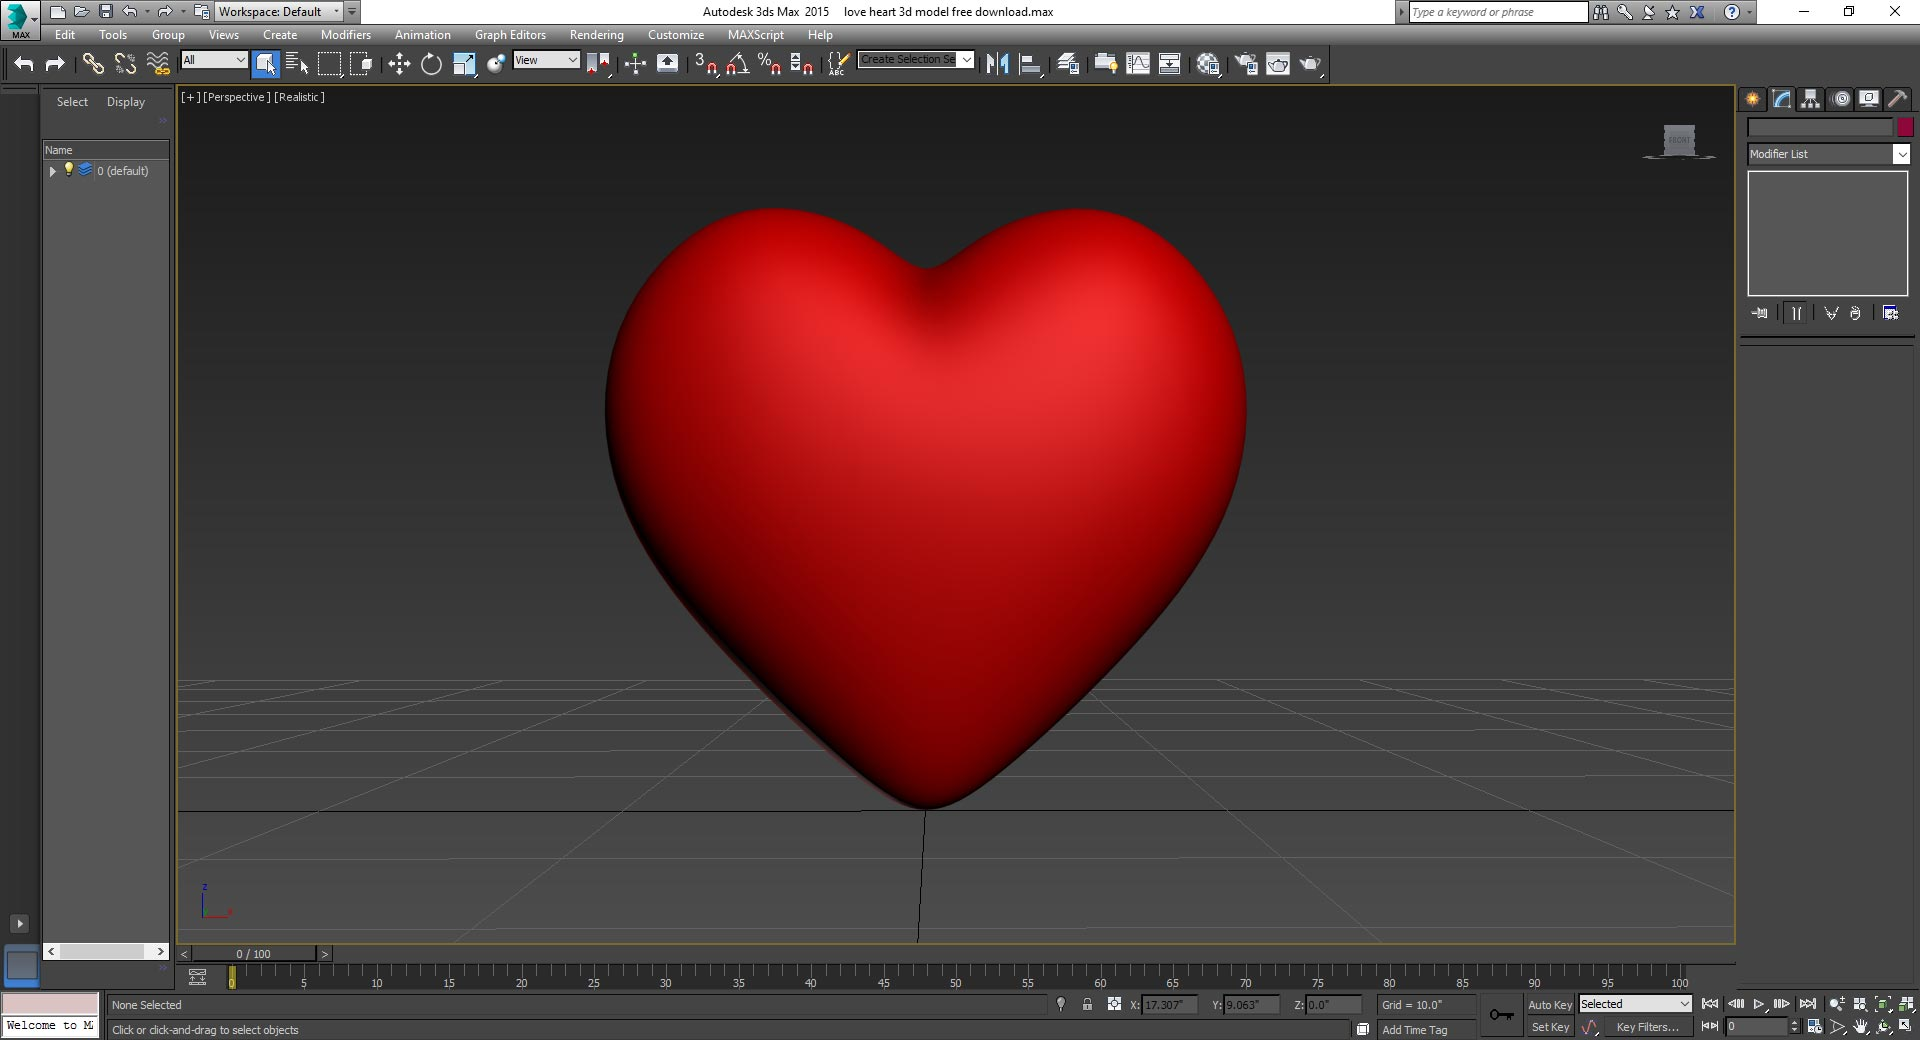 Love Heart 3D Model Free Download